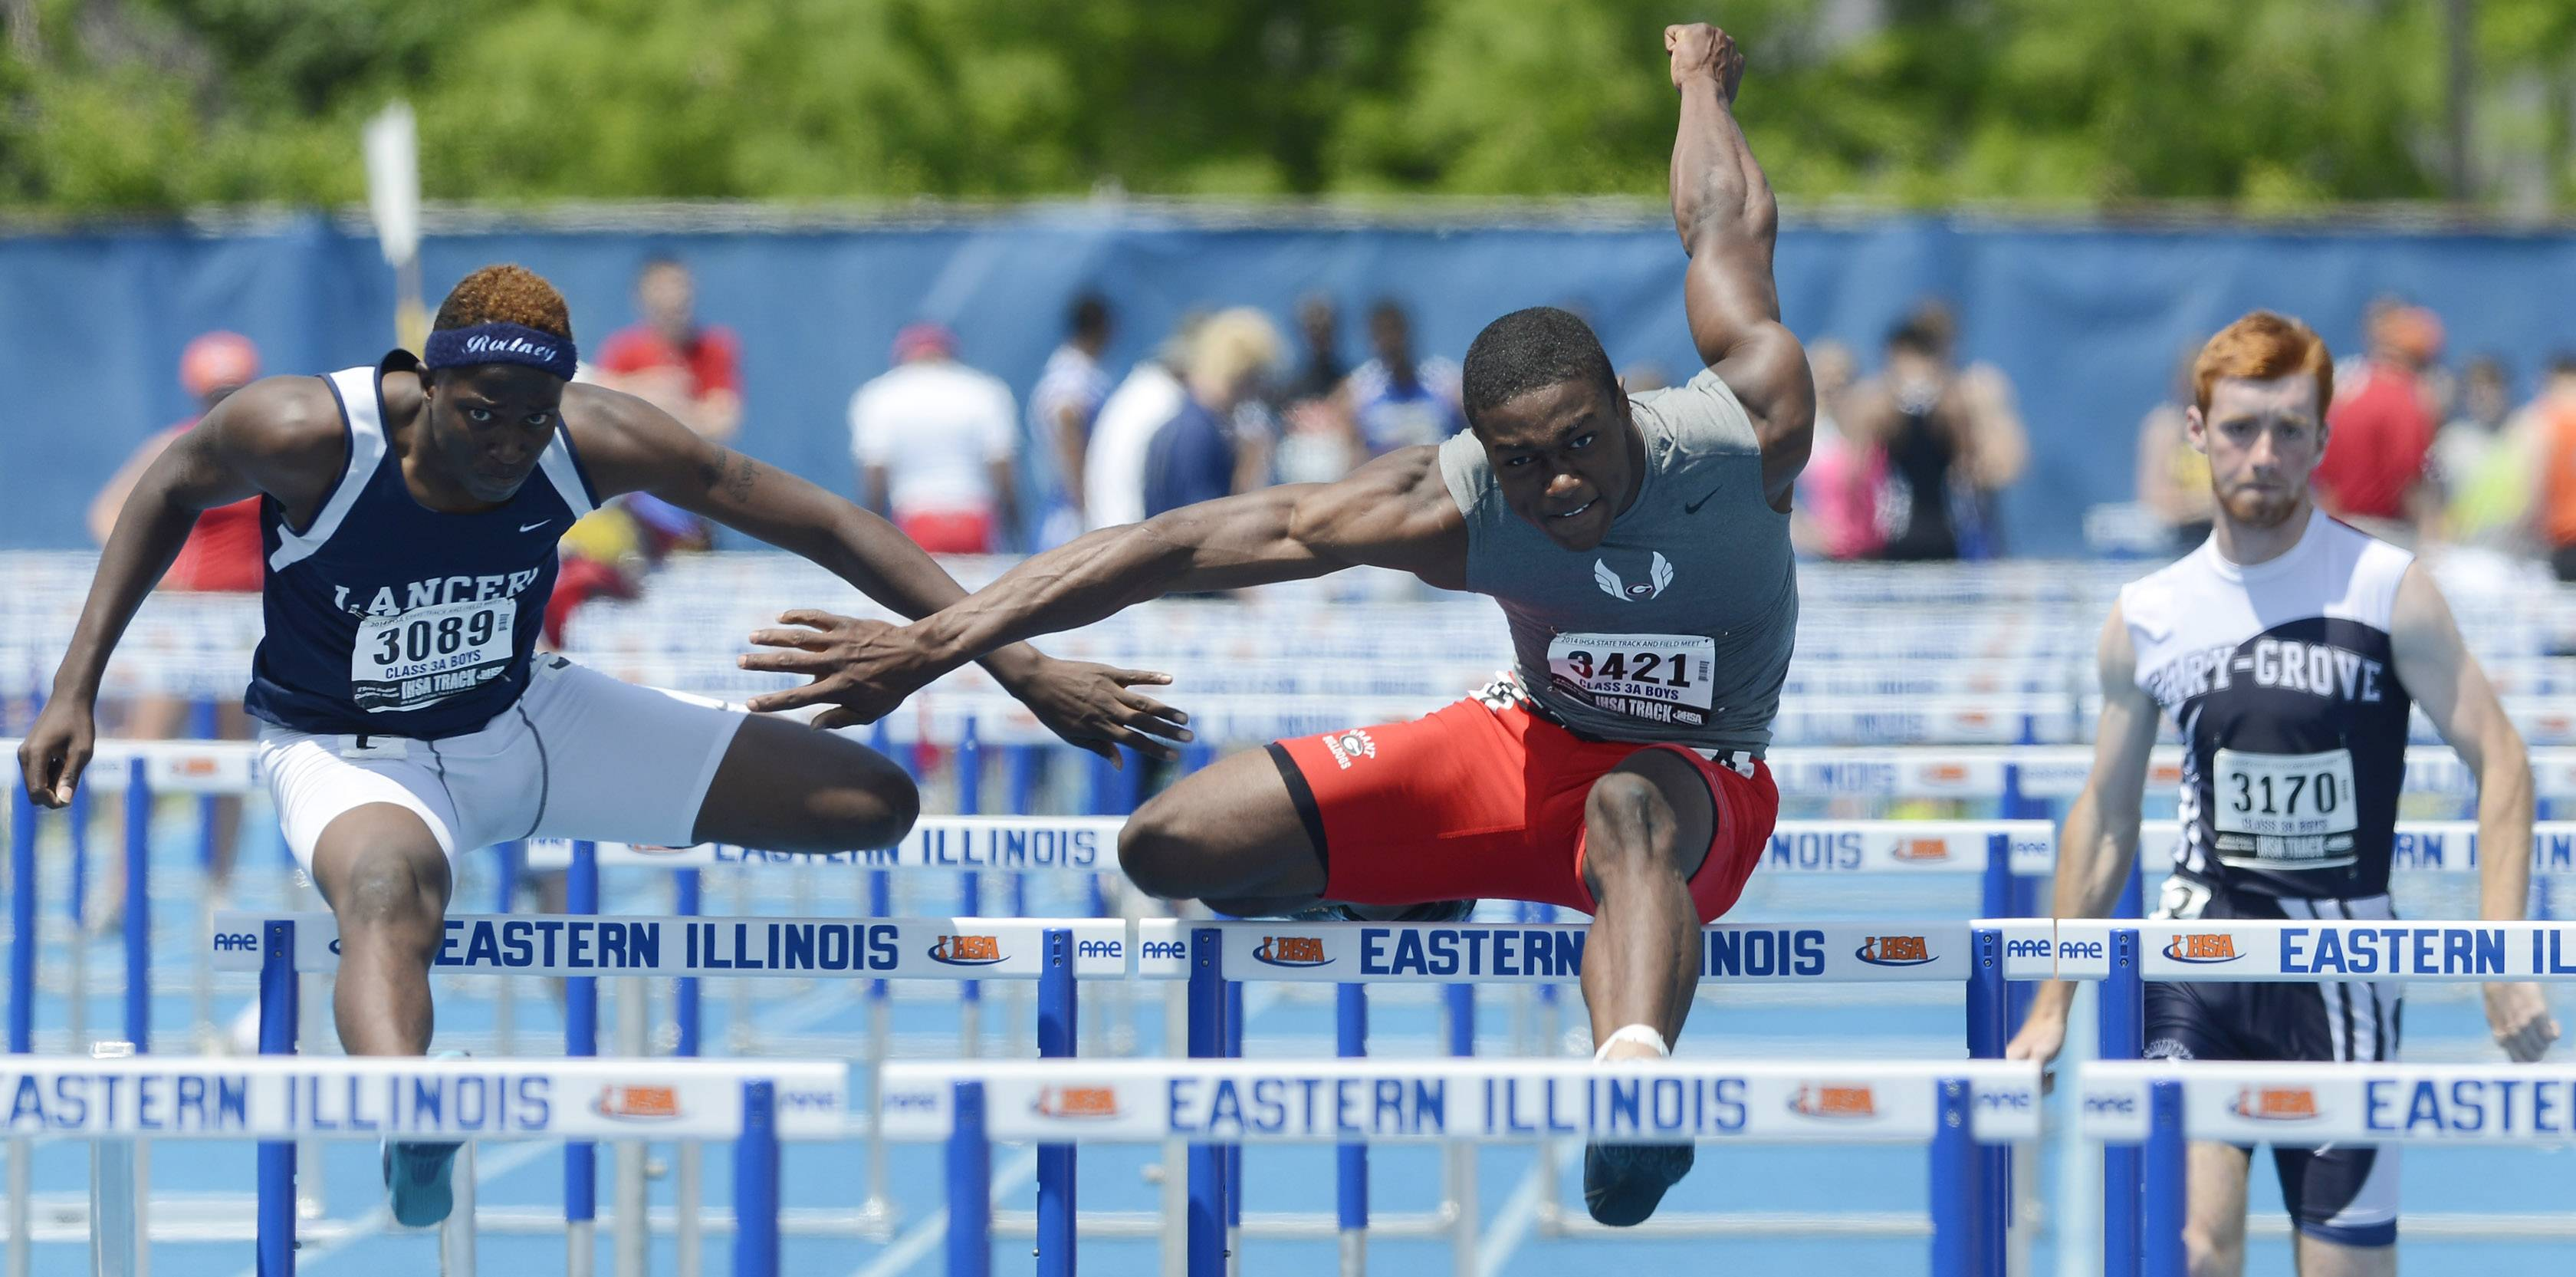 Grant's Jonathan Wells, middle, runs between Belleville East's William Session, left, and Cary-Grove's Michael Saxon in the 110-meter high hurdles during the boys Class 3A state track and field preliminaries in Charleston Friday.